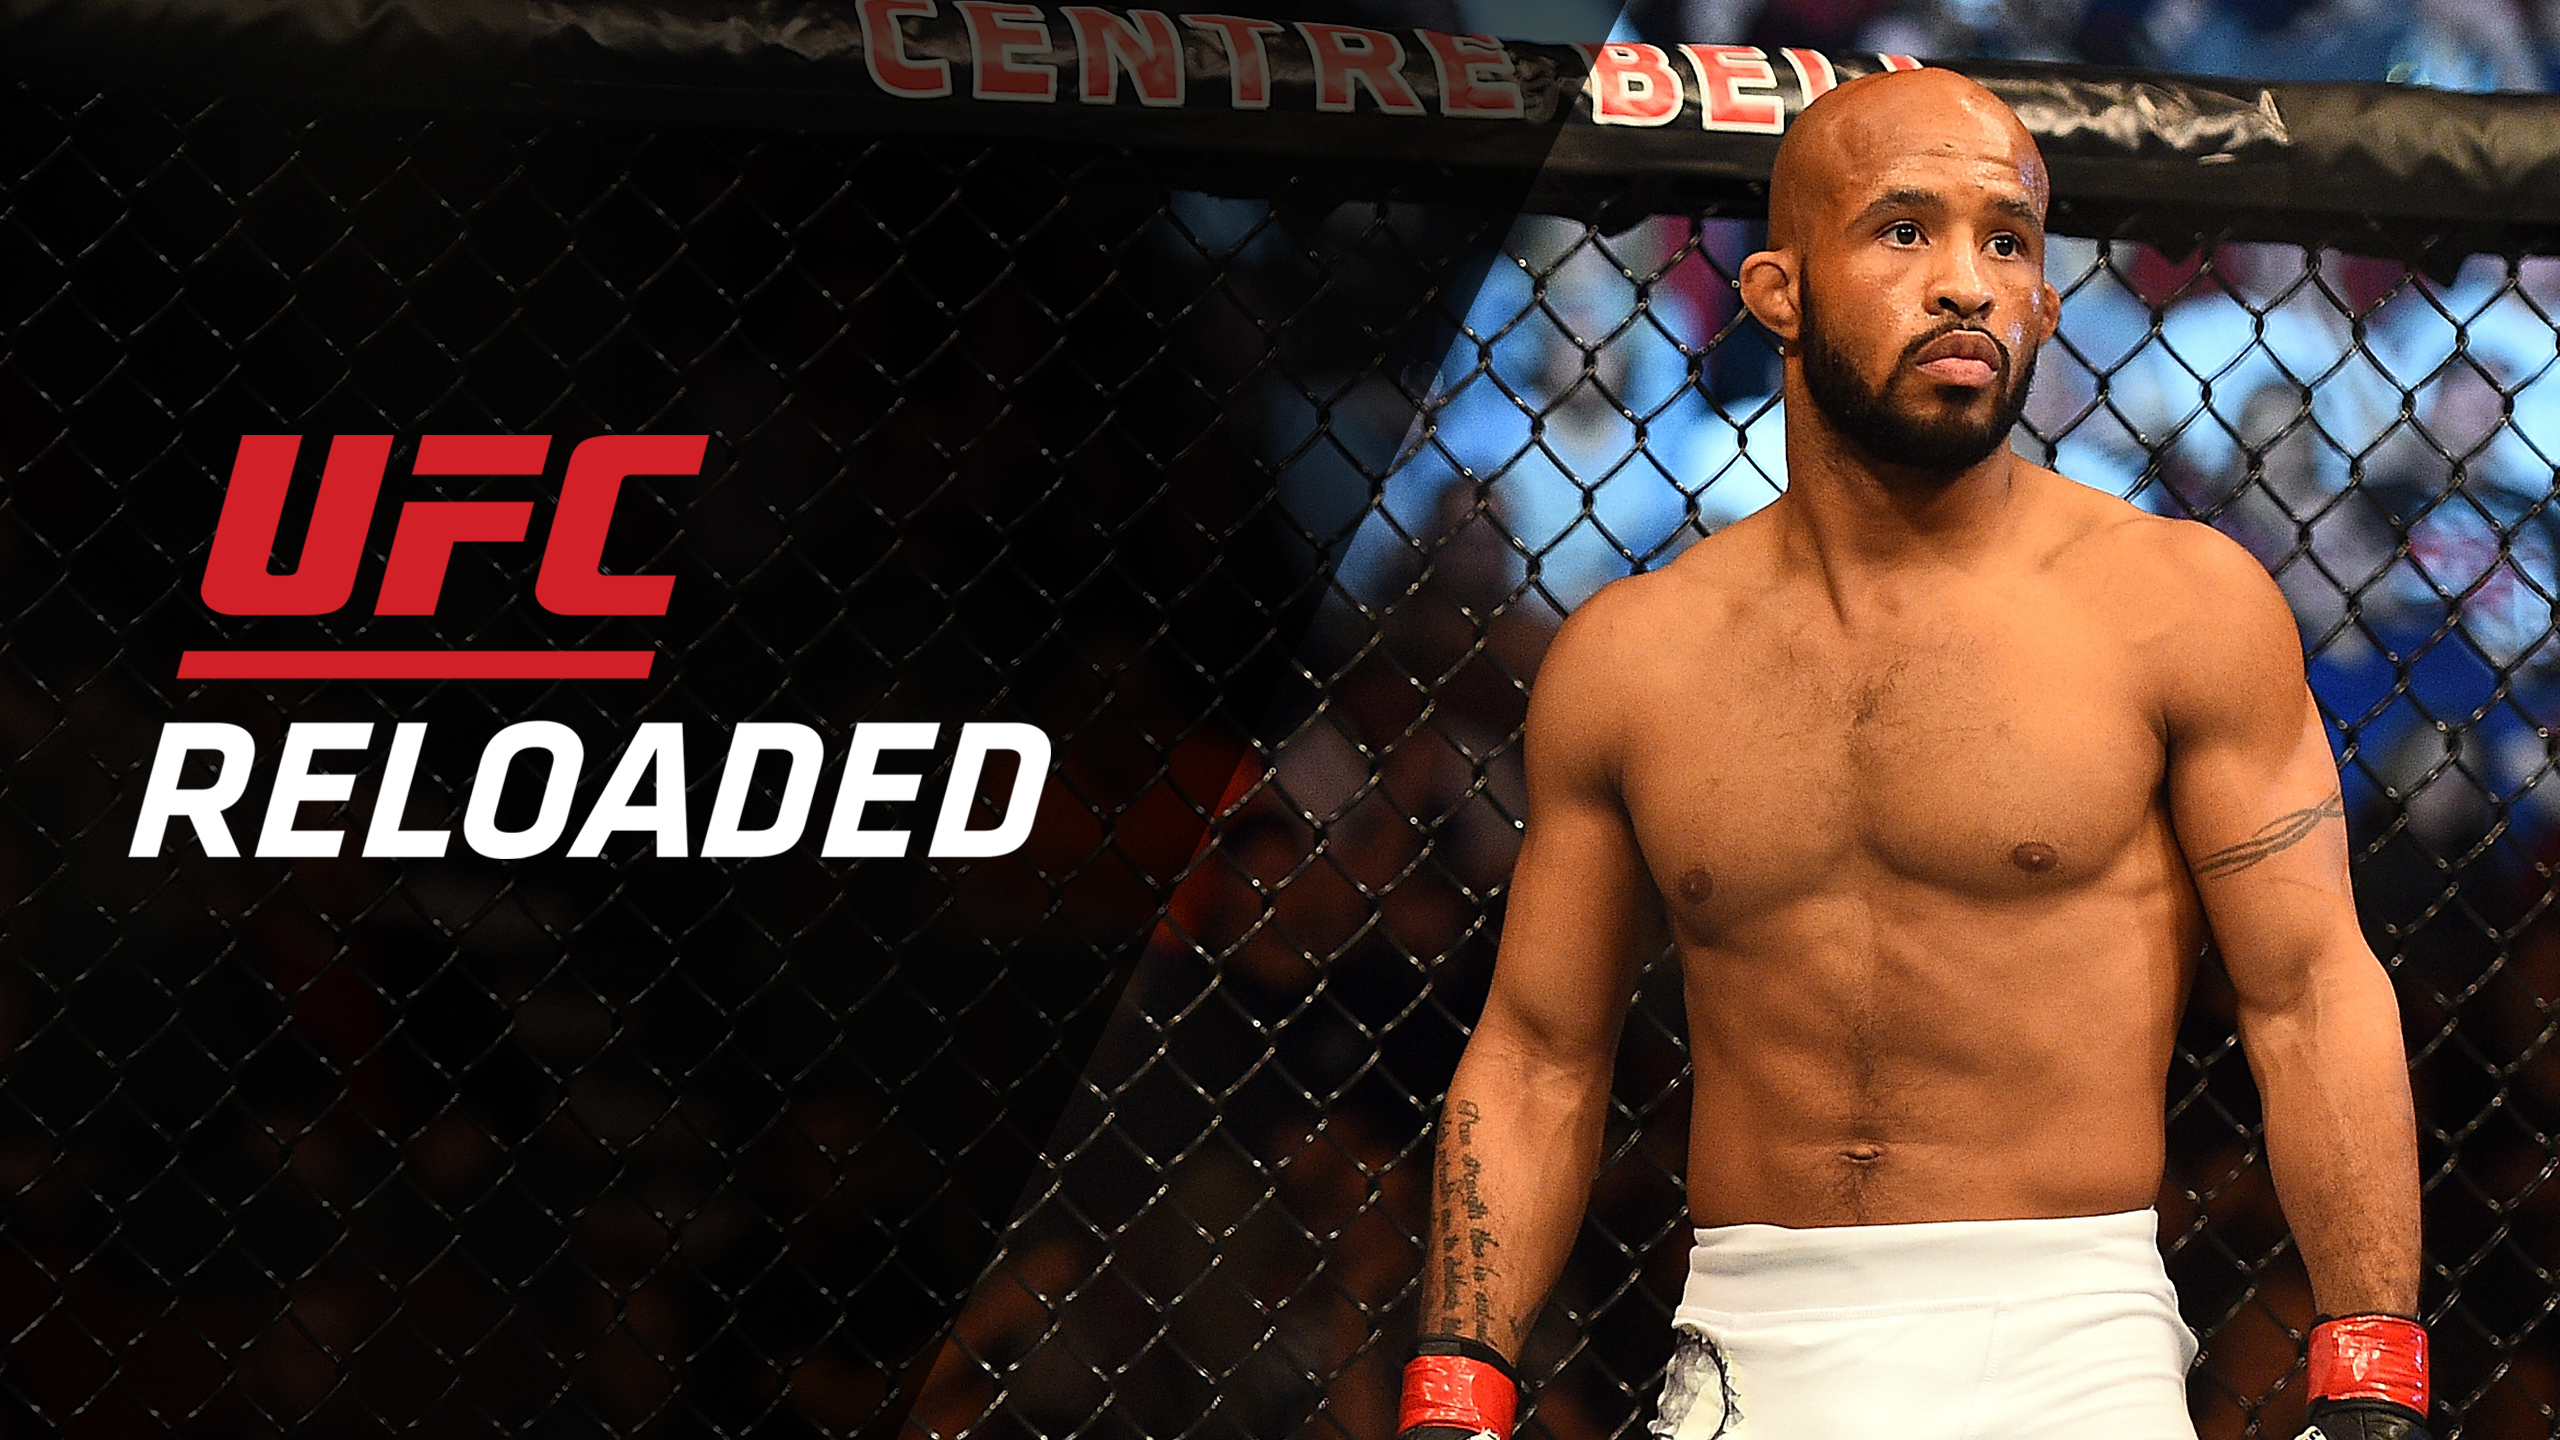 UFC Reloaded: 186: Johnson vs. Horiguchi